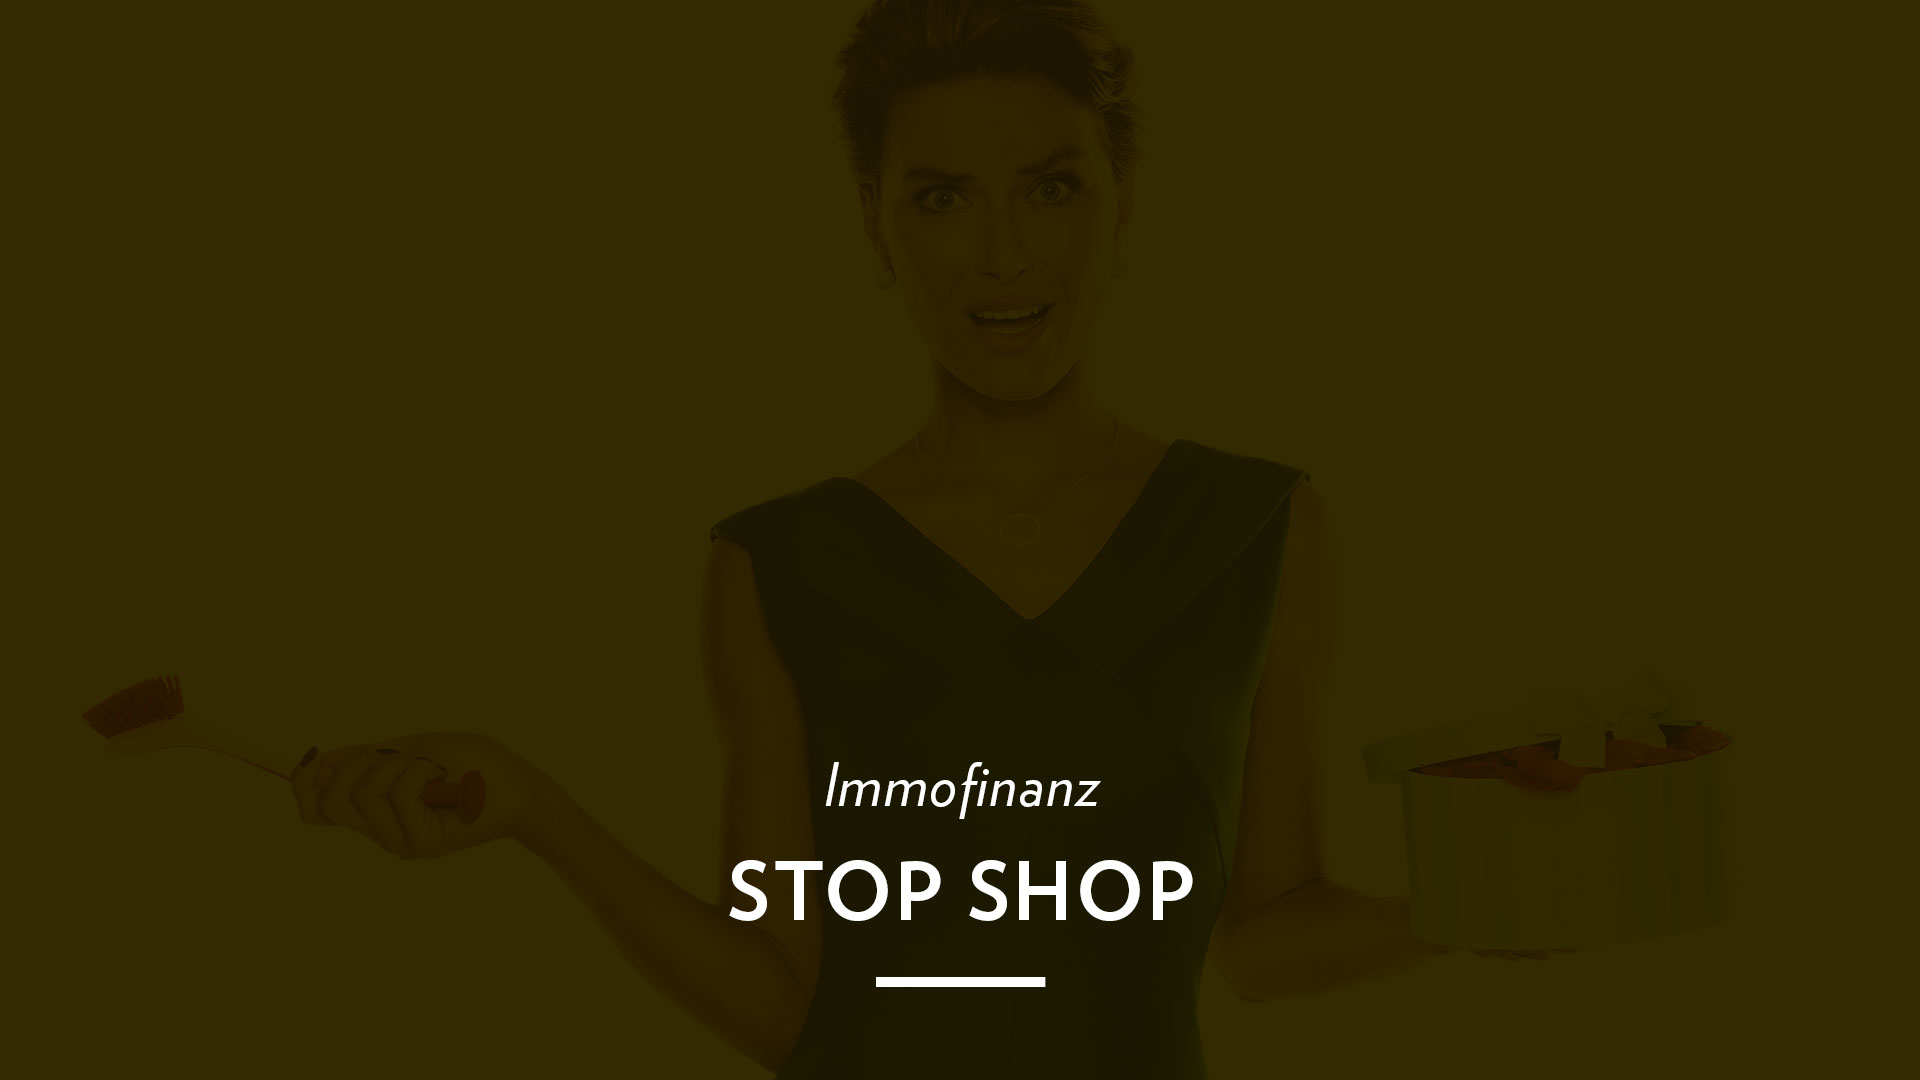 Immofinanz – STOP SHOP